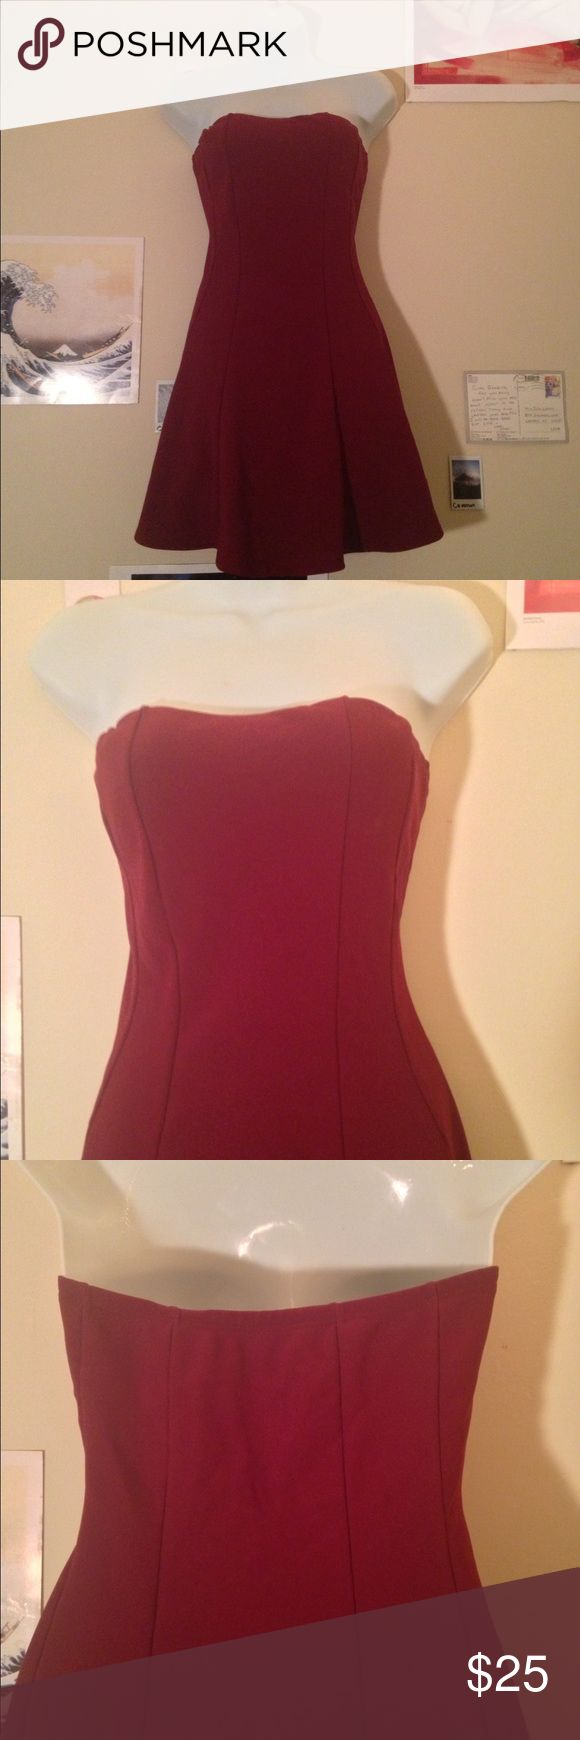 Strapless Body Central party dress! This burgundy dress is fitted in all the right places! Body Central Dresses Mini